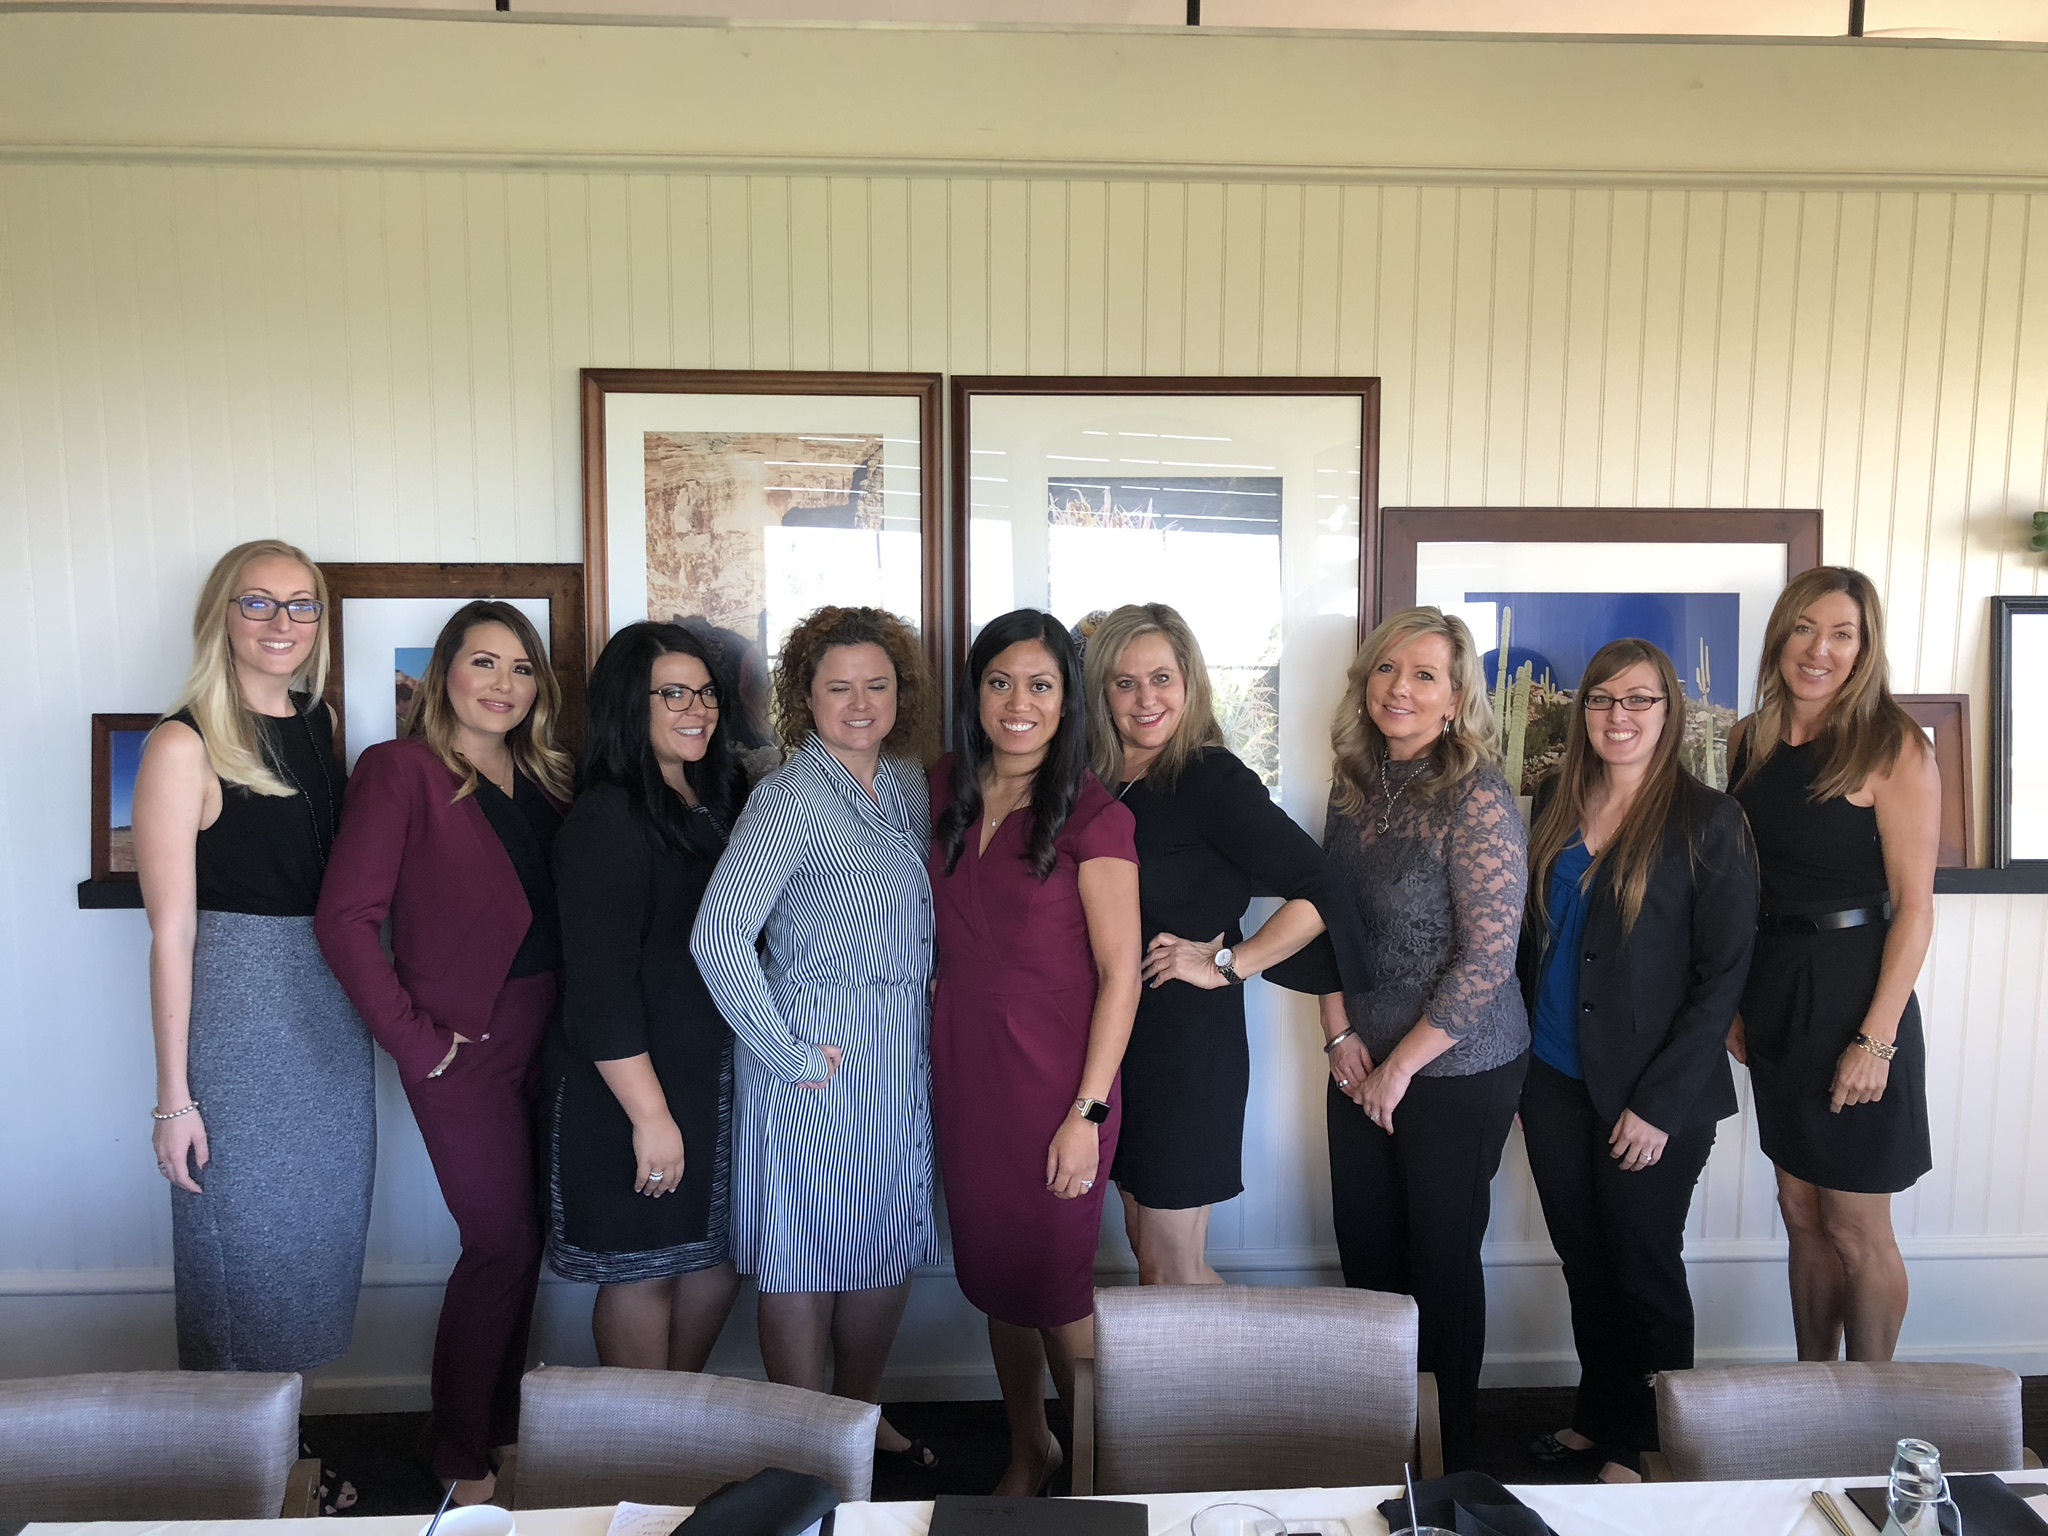 Pictured from left to right: Alissia Zenhausern, Angela Lowery, Analise Zaremba, Unknown, North Scottsdale Chapter Head Rea Mayer, Lisa Payne, Unknown, Unknown, and Susan Underwood.